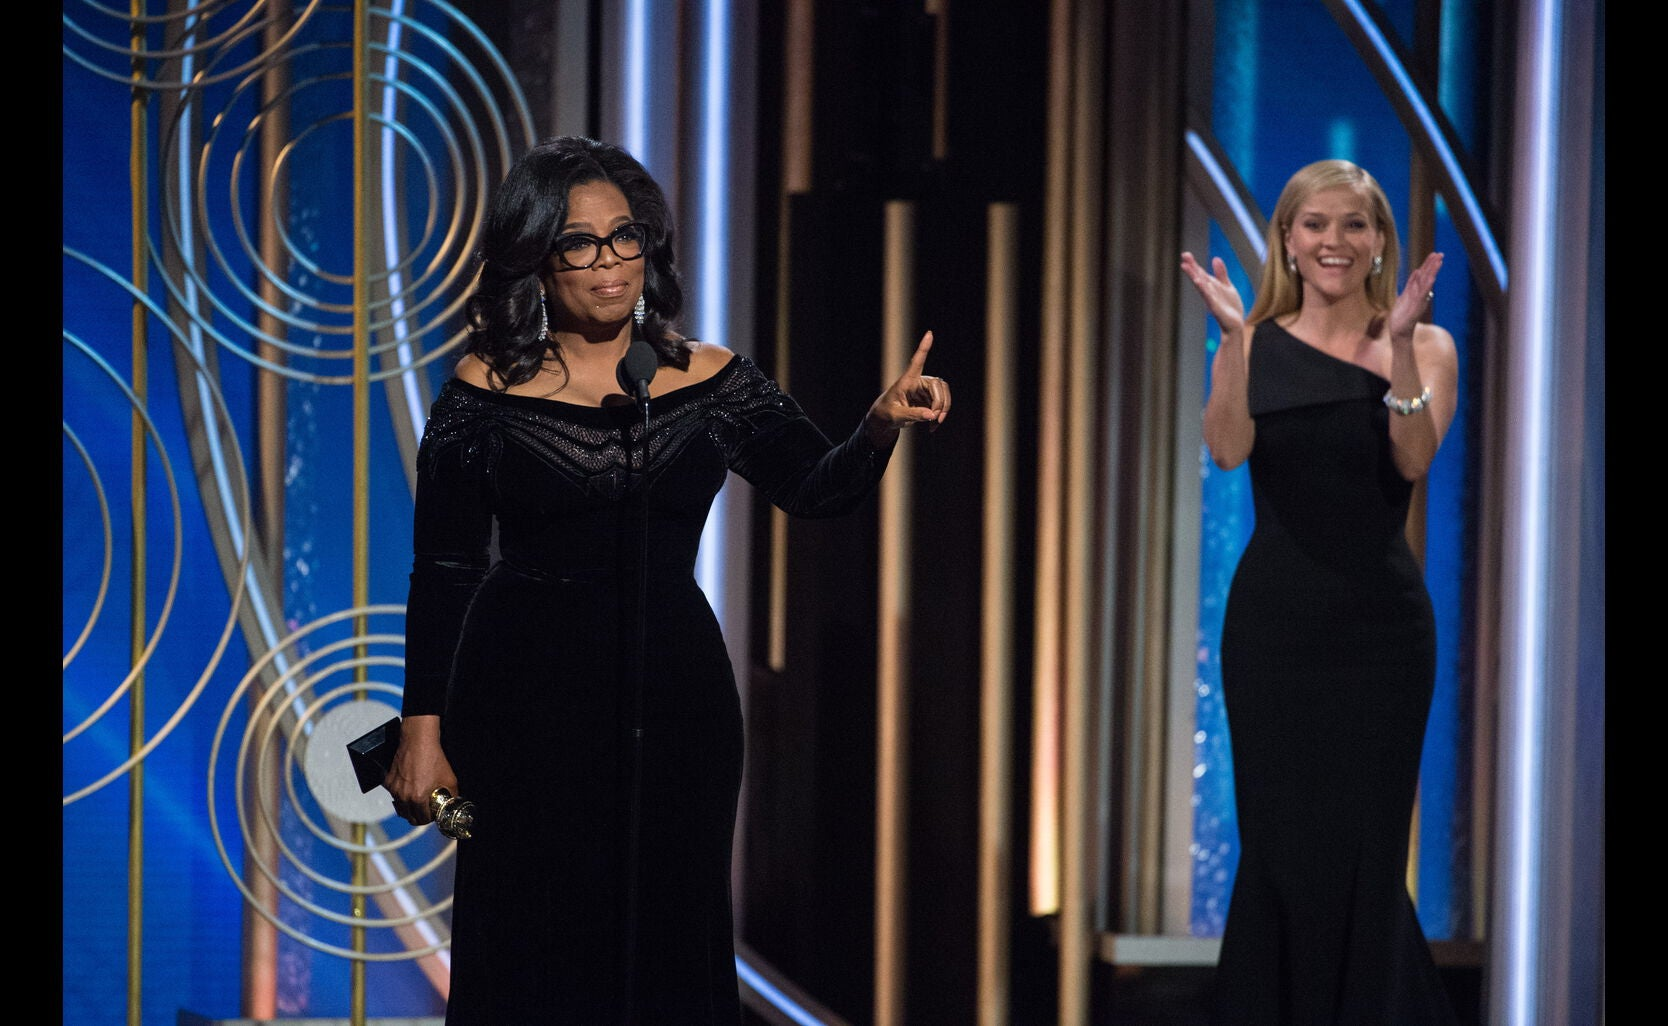 Oprah Winfrey, recipient of the Cecil B. deMille Award, and Reese Witherspoon